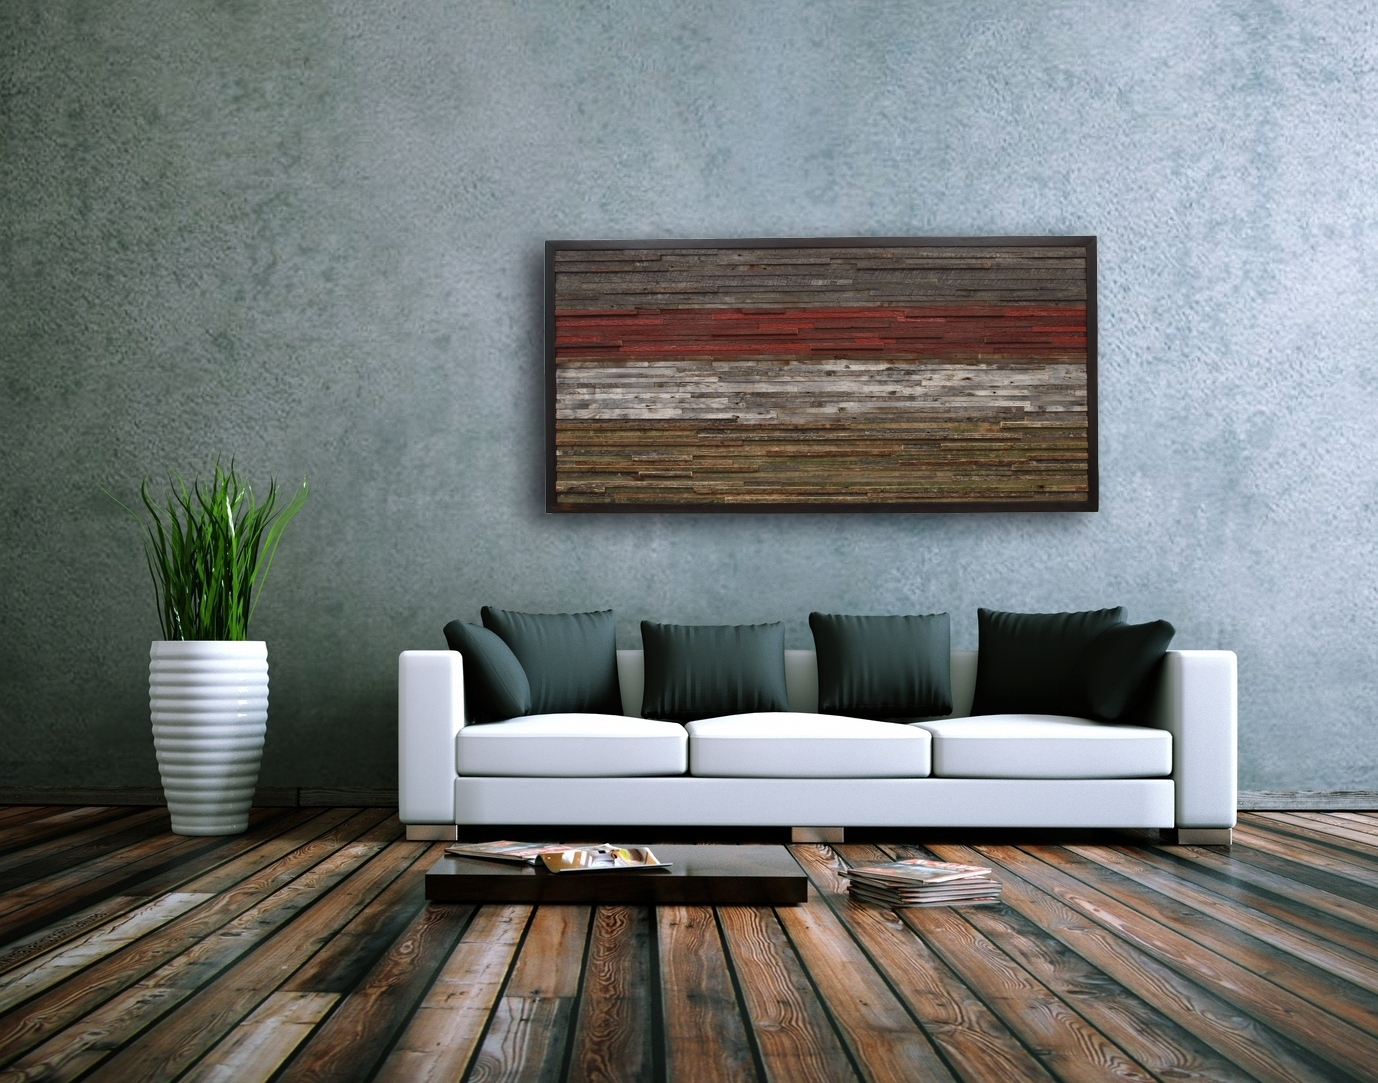 Modern Rustic Wall Decor For Living Room